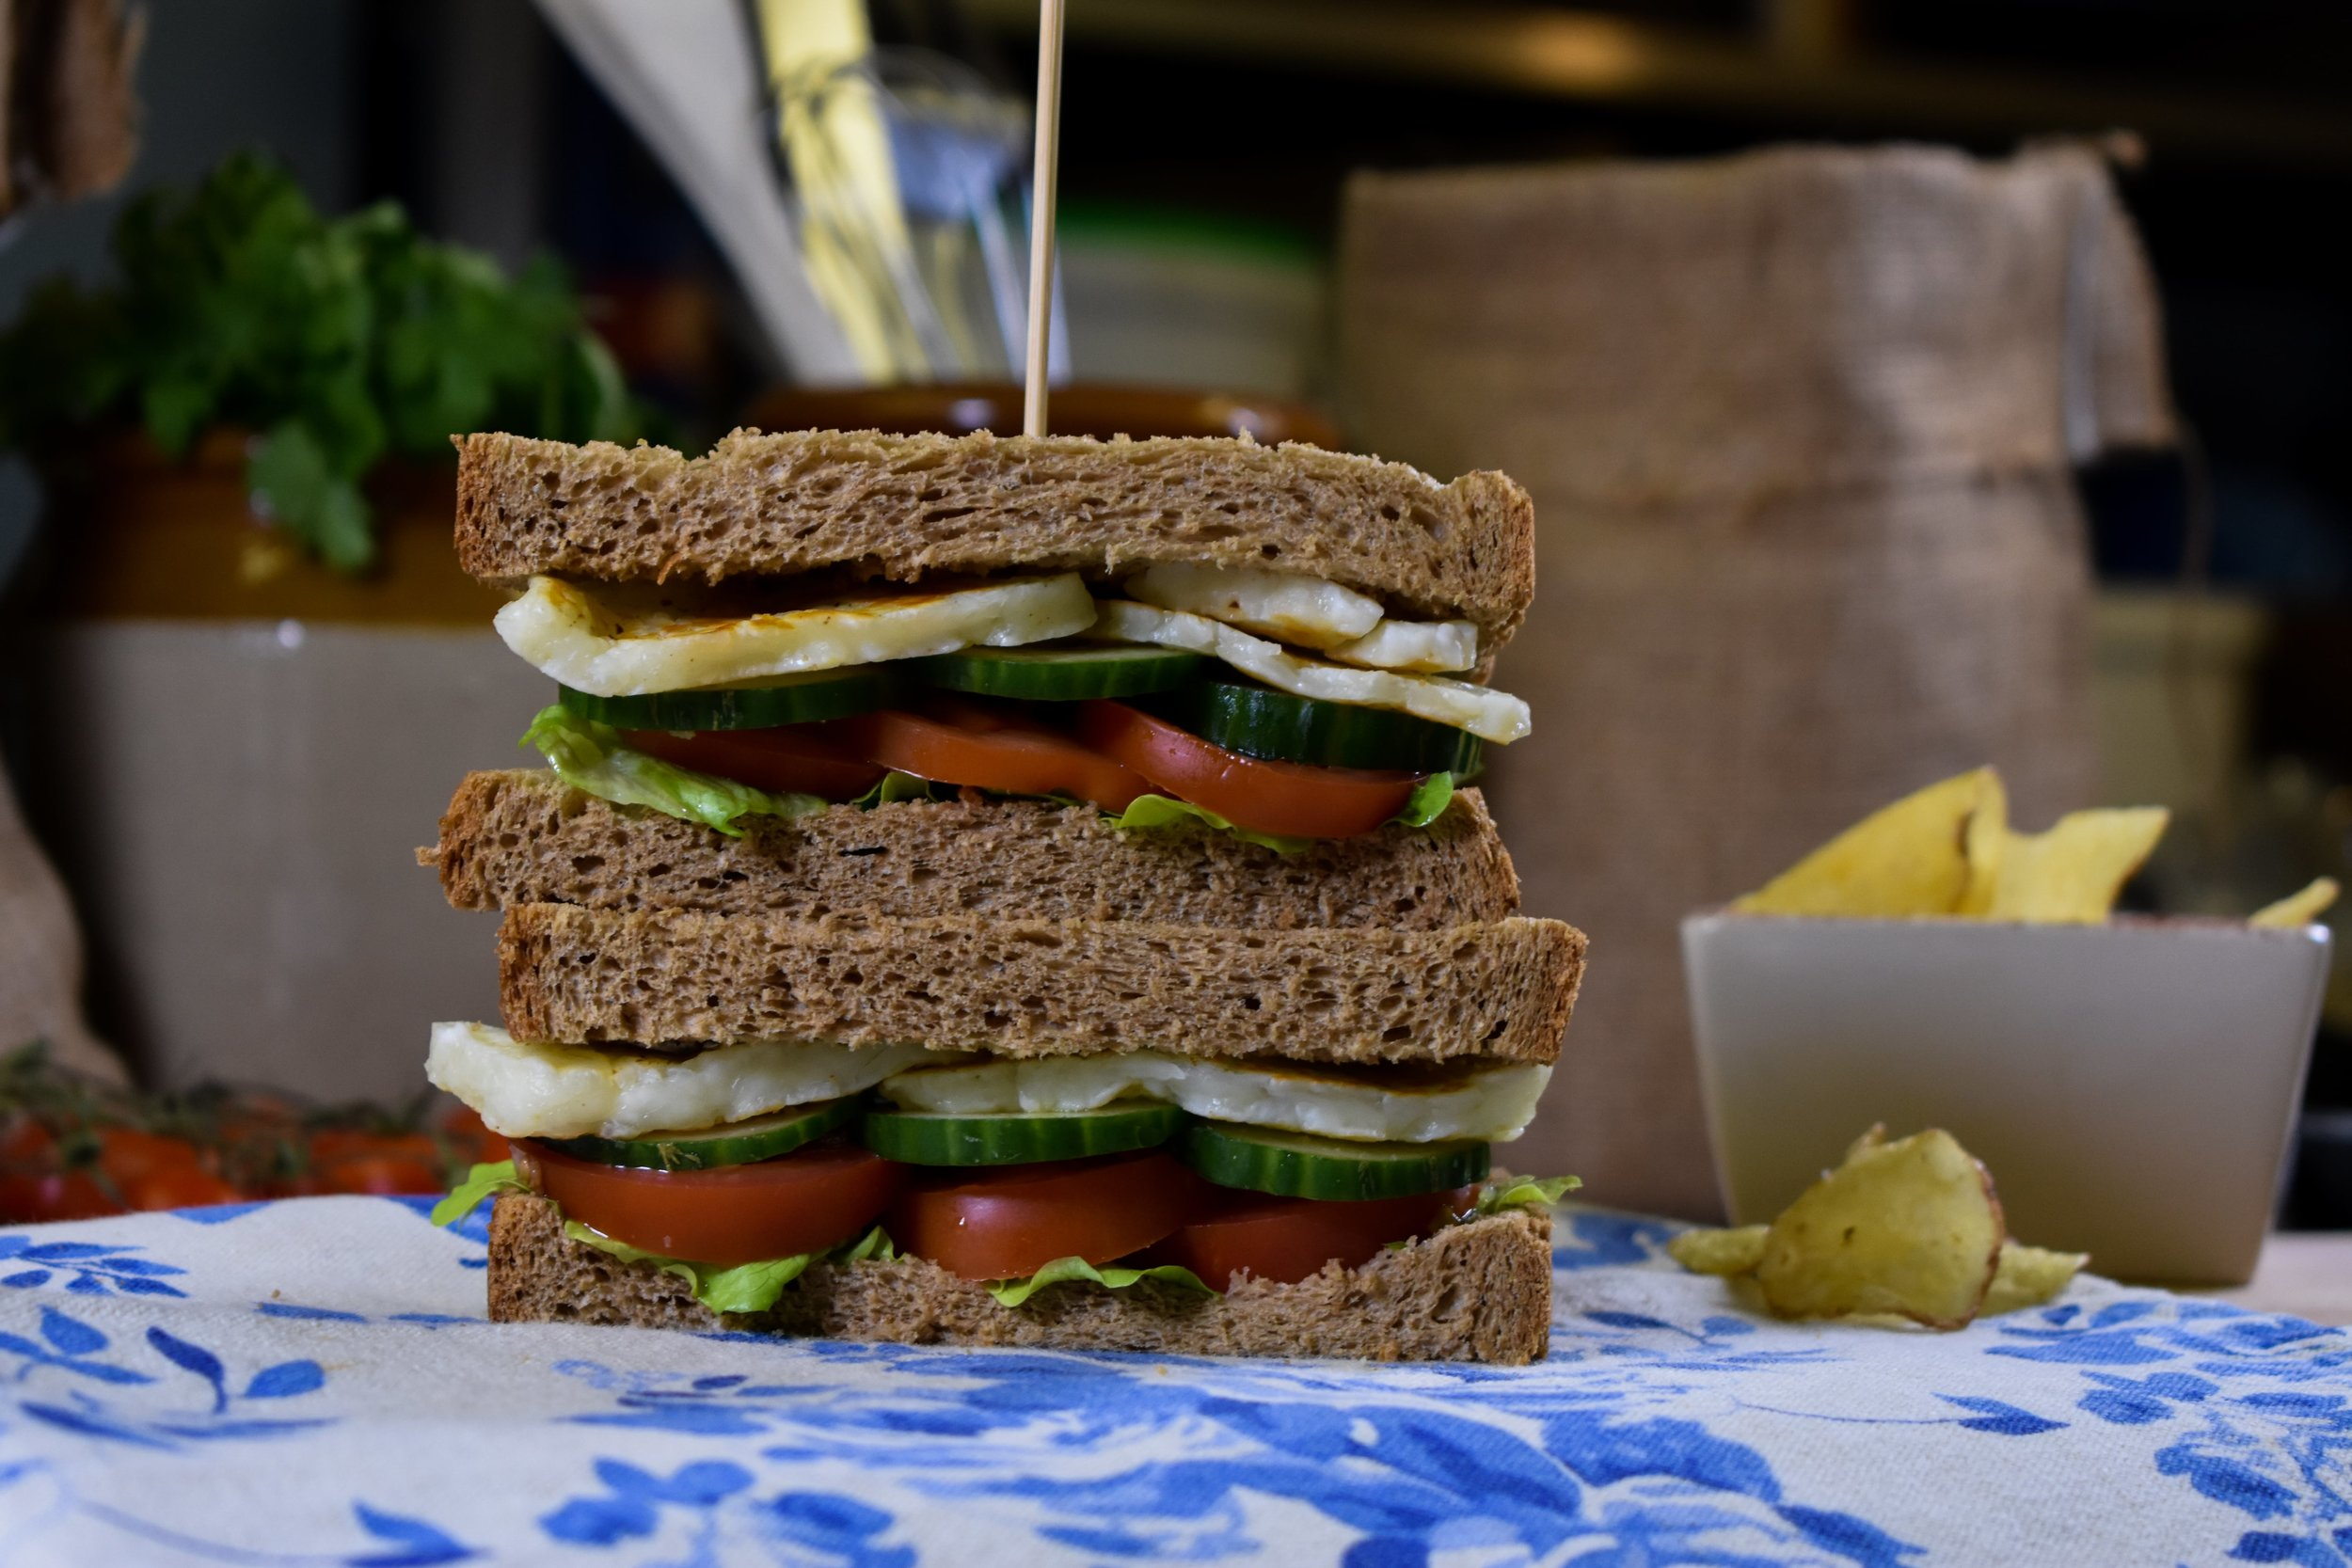 Our wholemeal bloomer with a delicious filling of lettuce, tomato, cucumber and halloumi.